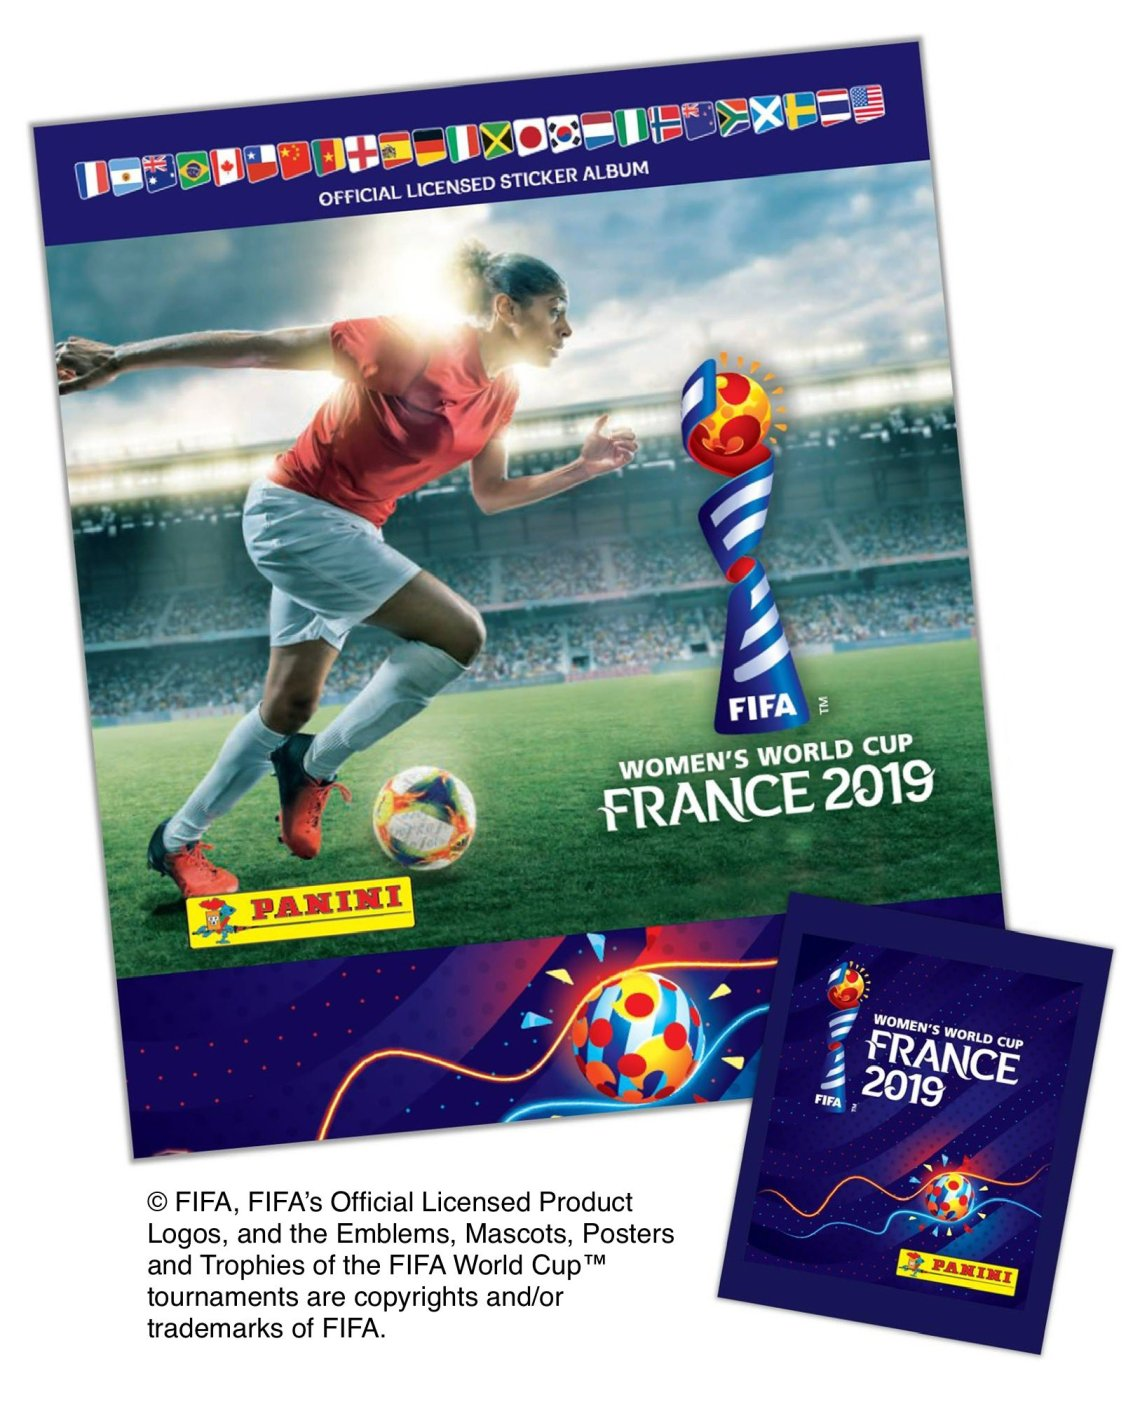 PANINI FIFA WOMEN WORLD CUP FRANCE 2019 VISUEL.jpg